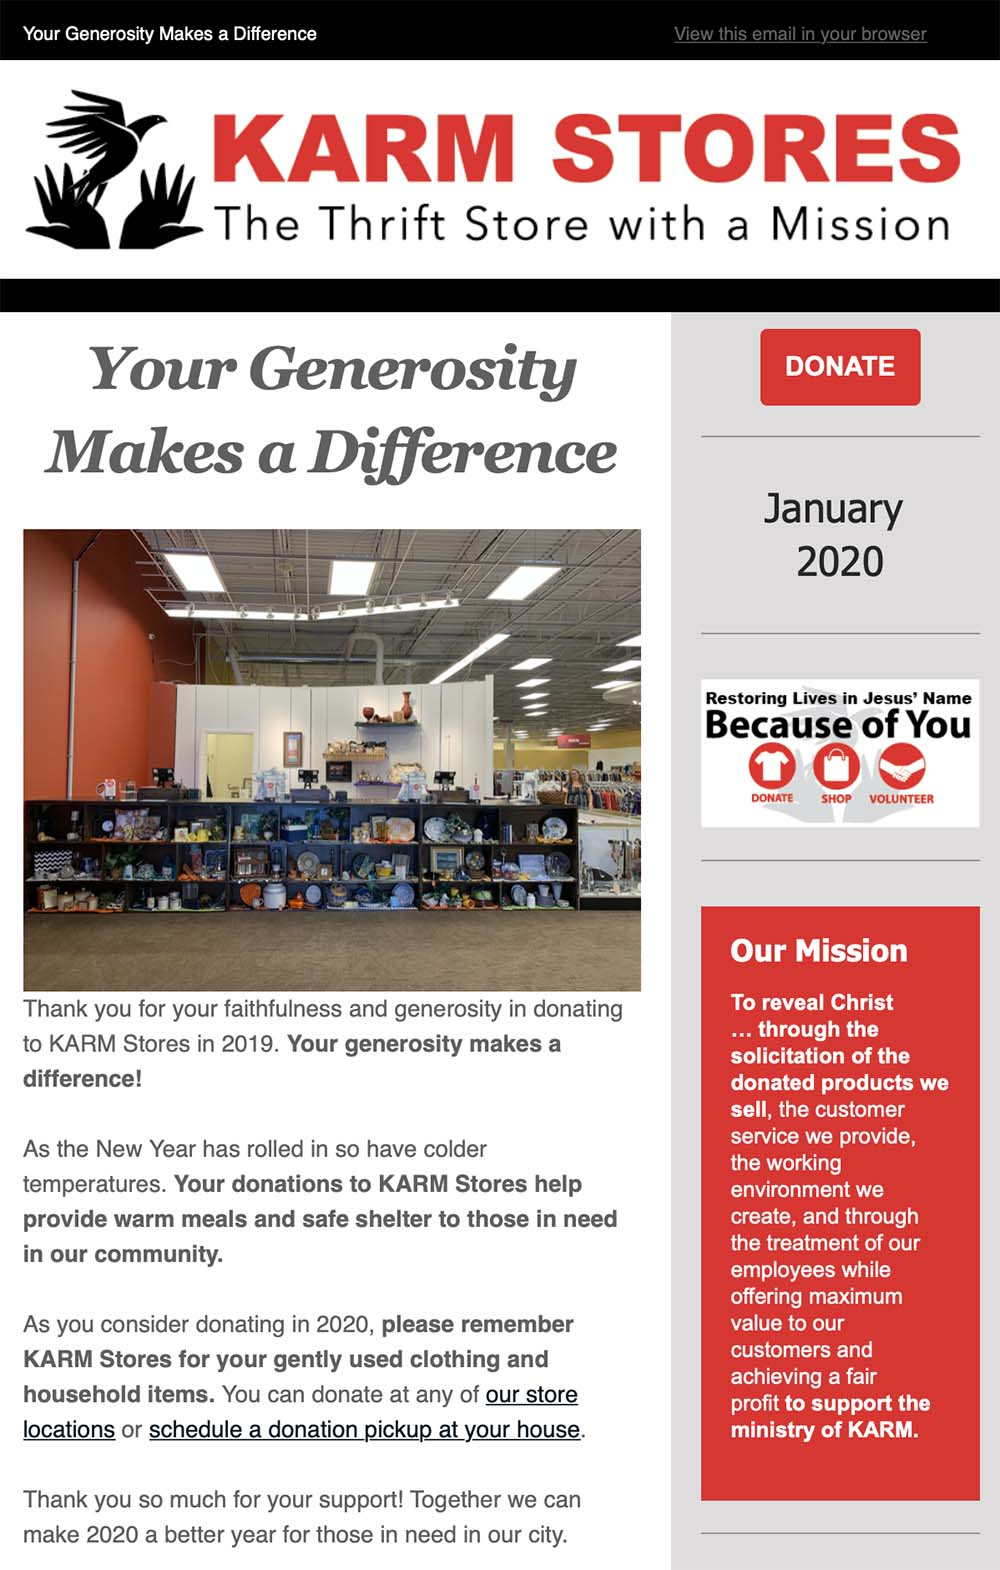 KARM: Your Generosity Makes a Difference